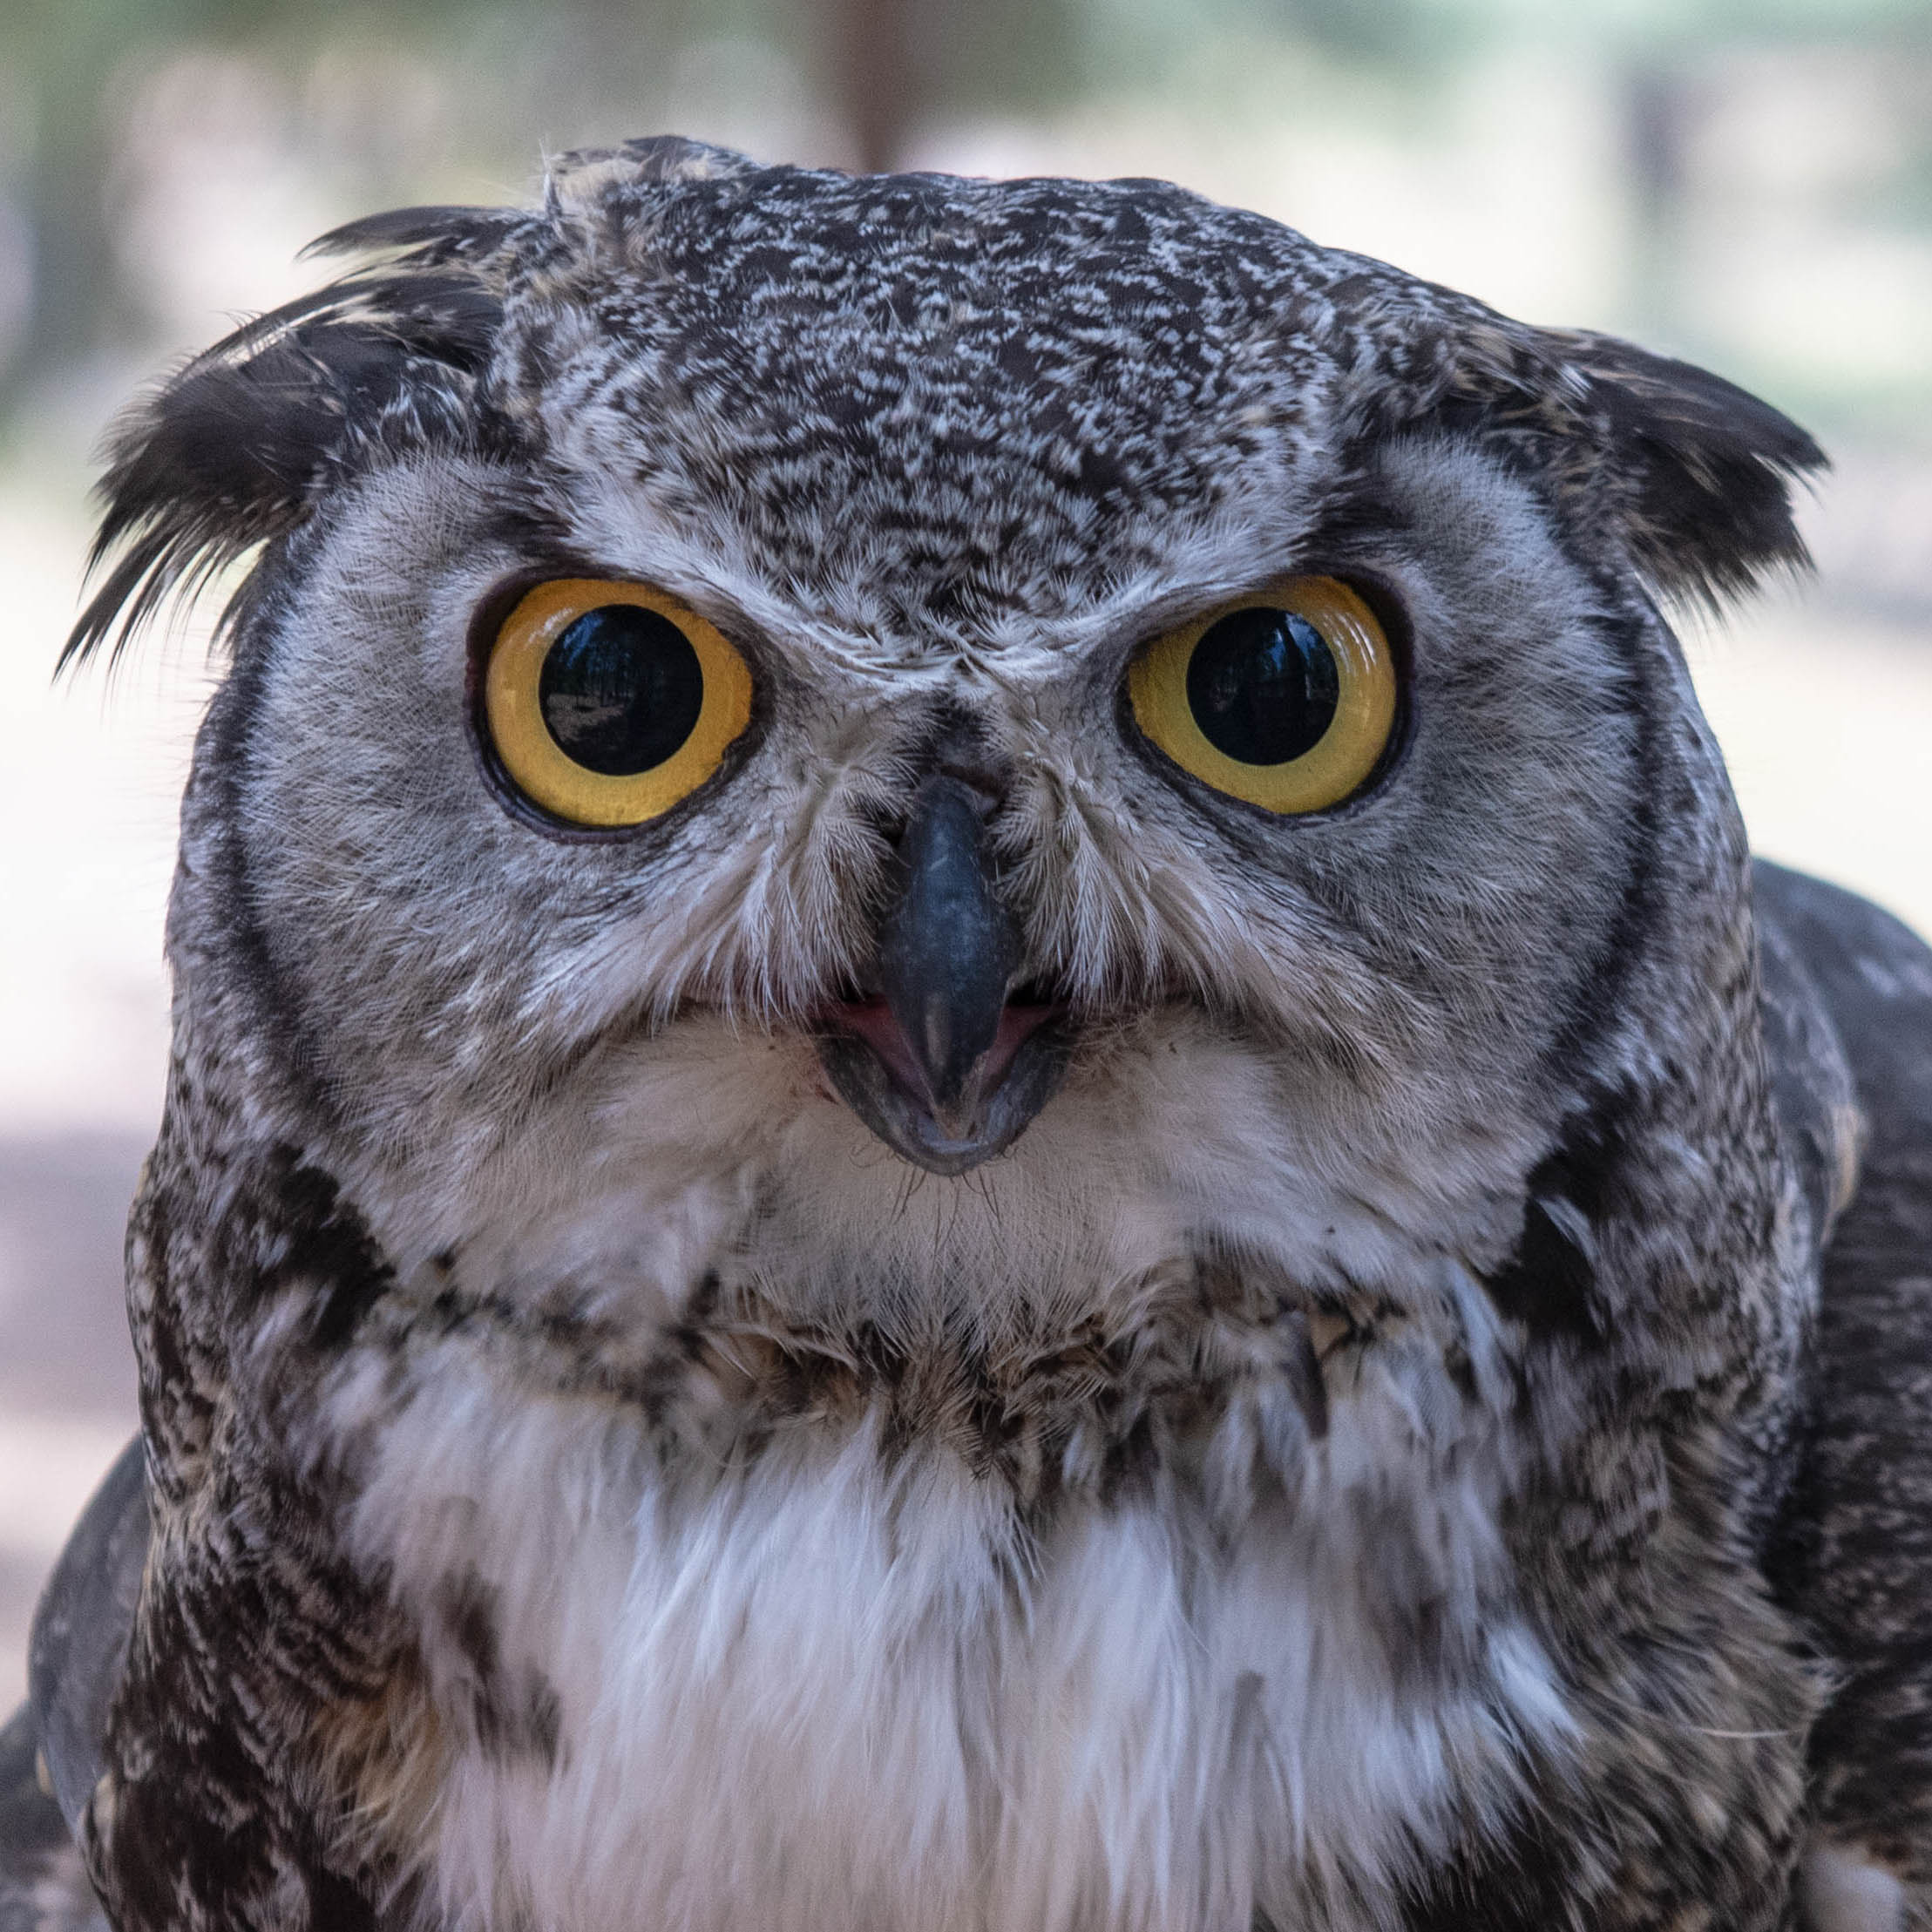 Dudley-Great Horned Owl- (Bubo virginianus)